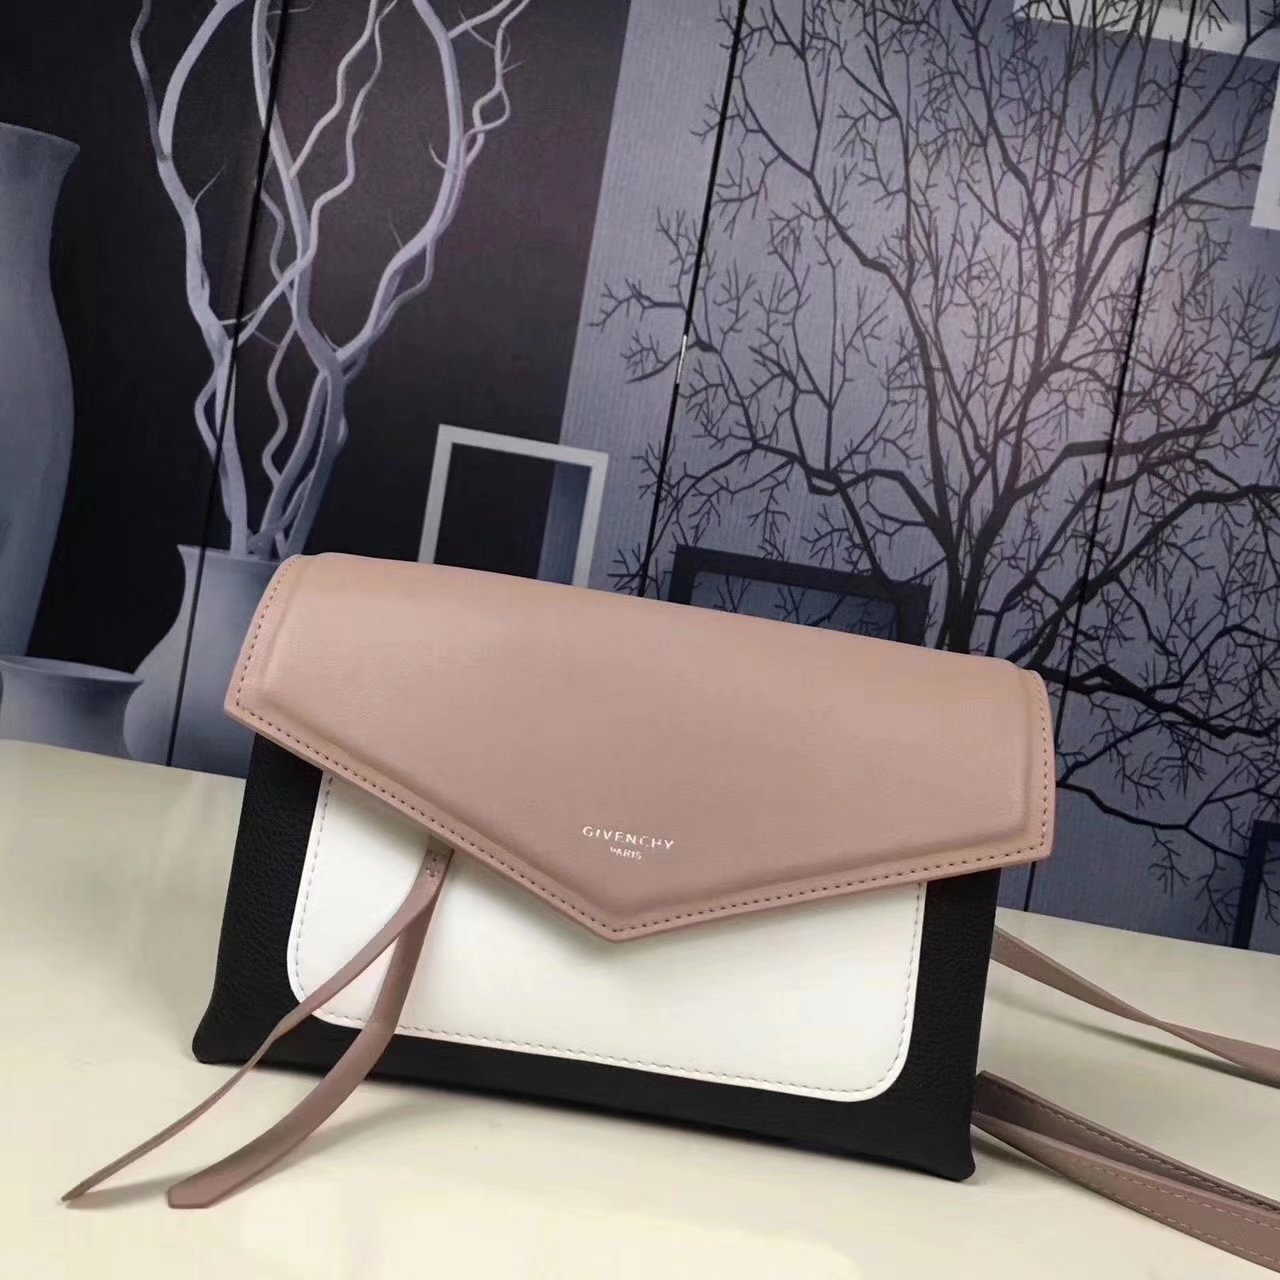 Givenchy Duetto Leather Crossbody Bag Beige-Black